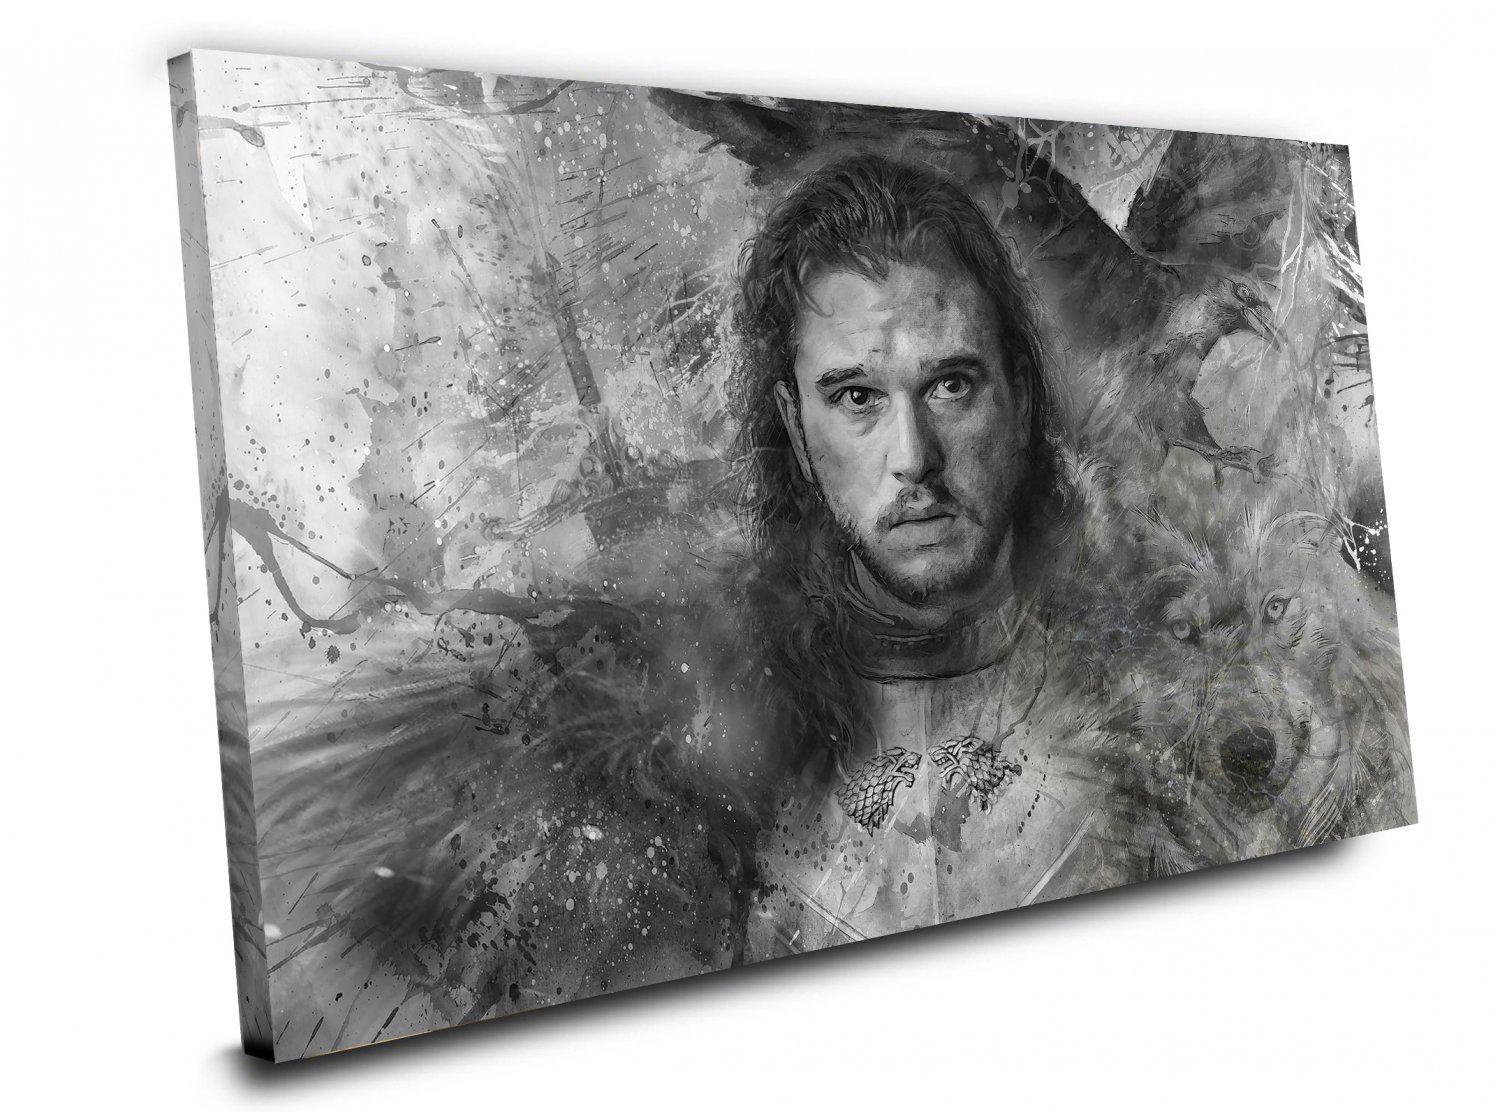 Game of Thrones,Jon Snow  14x20 inches Stretched Canvas